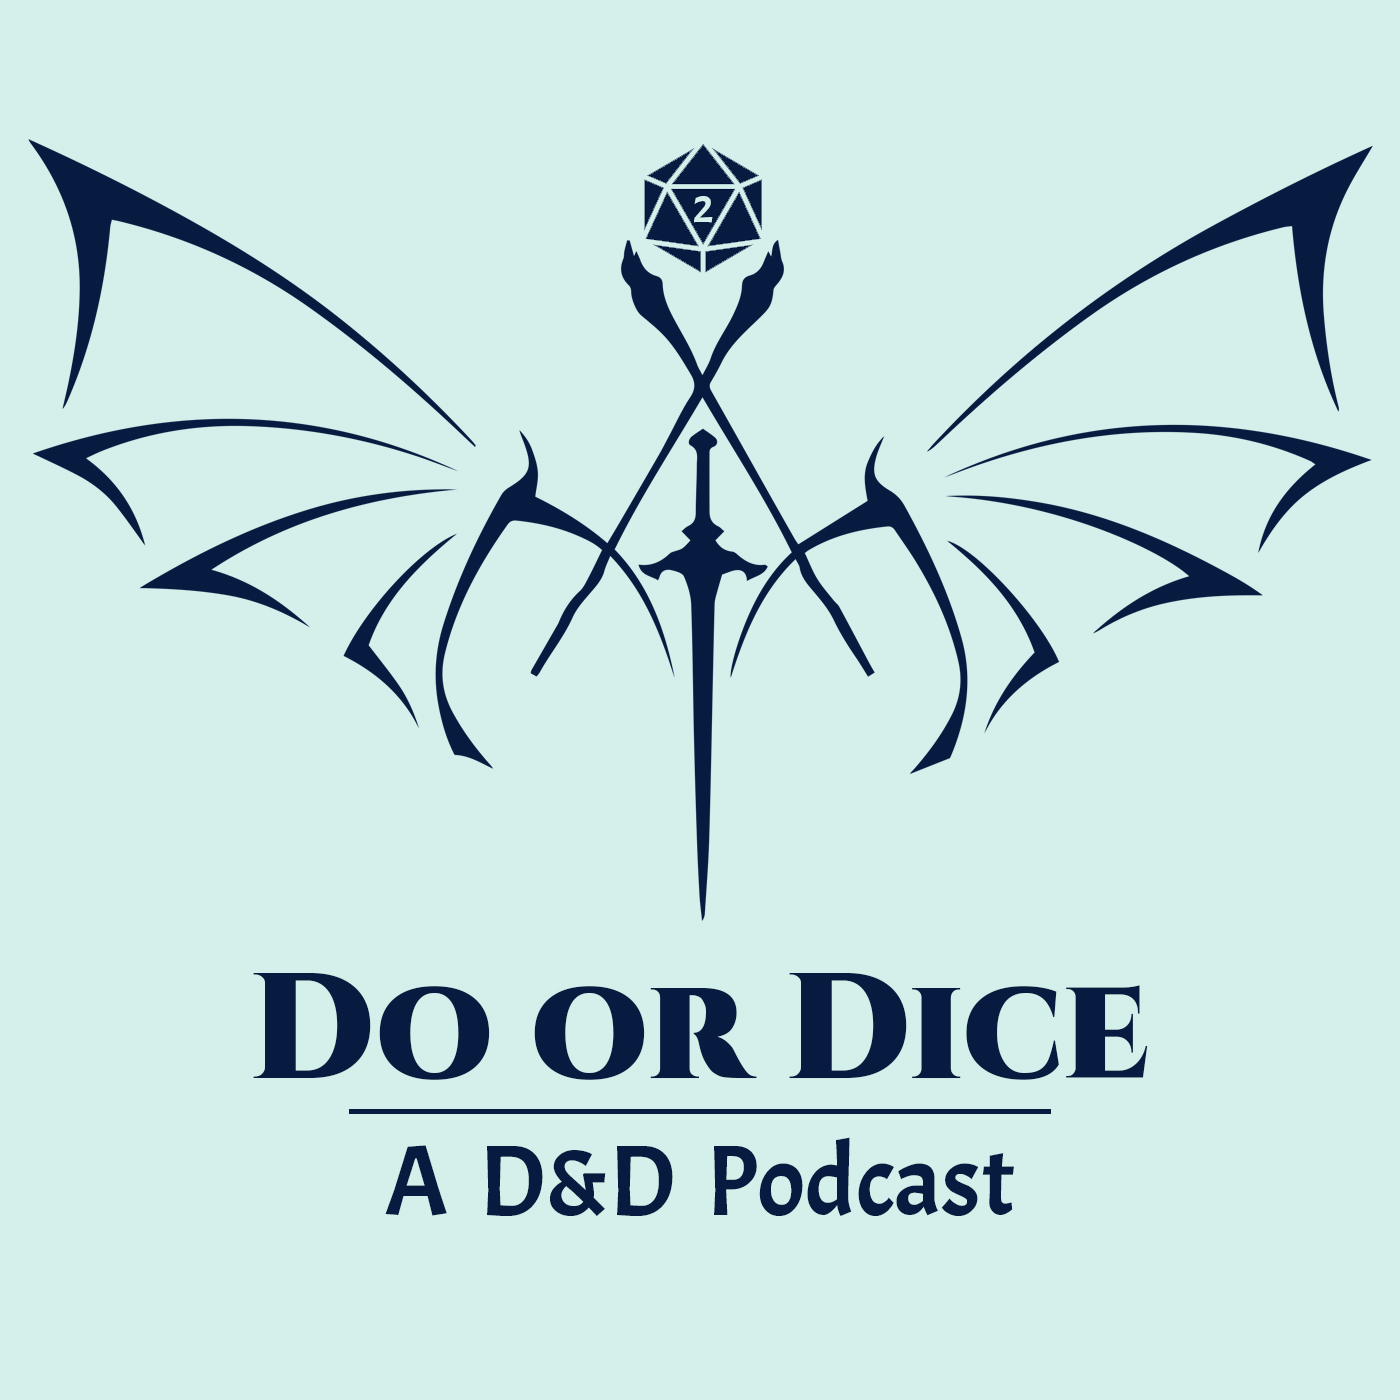 Do or Dice, podcast, D&D, dungeons and dragons, Halloween, Halloween 2019, Penance RPG, Gaming, Tabletop RPG, ttrpg, actual play, Halloween 2019 Dorohirsk